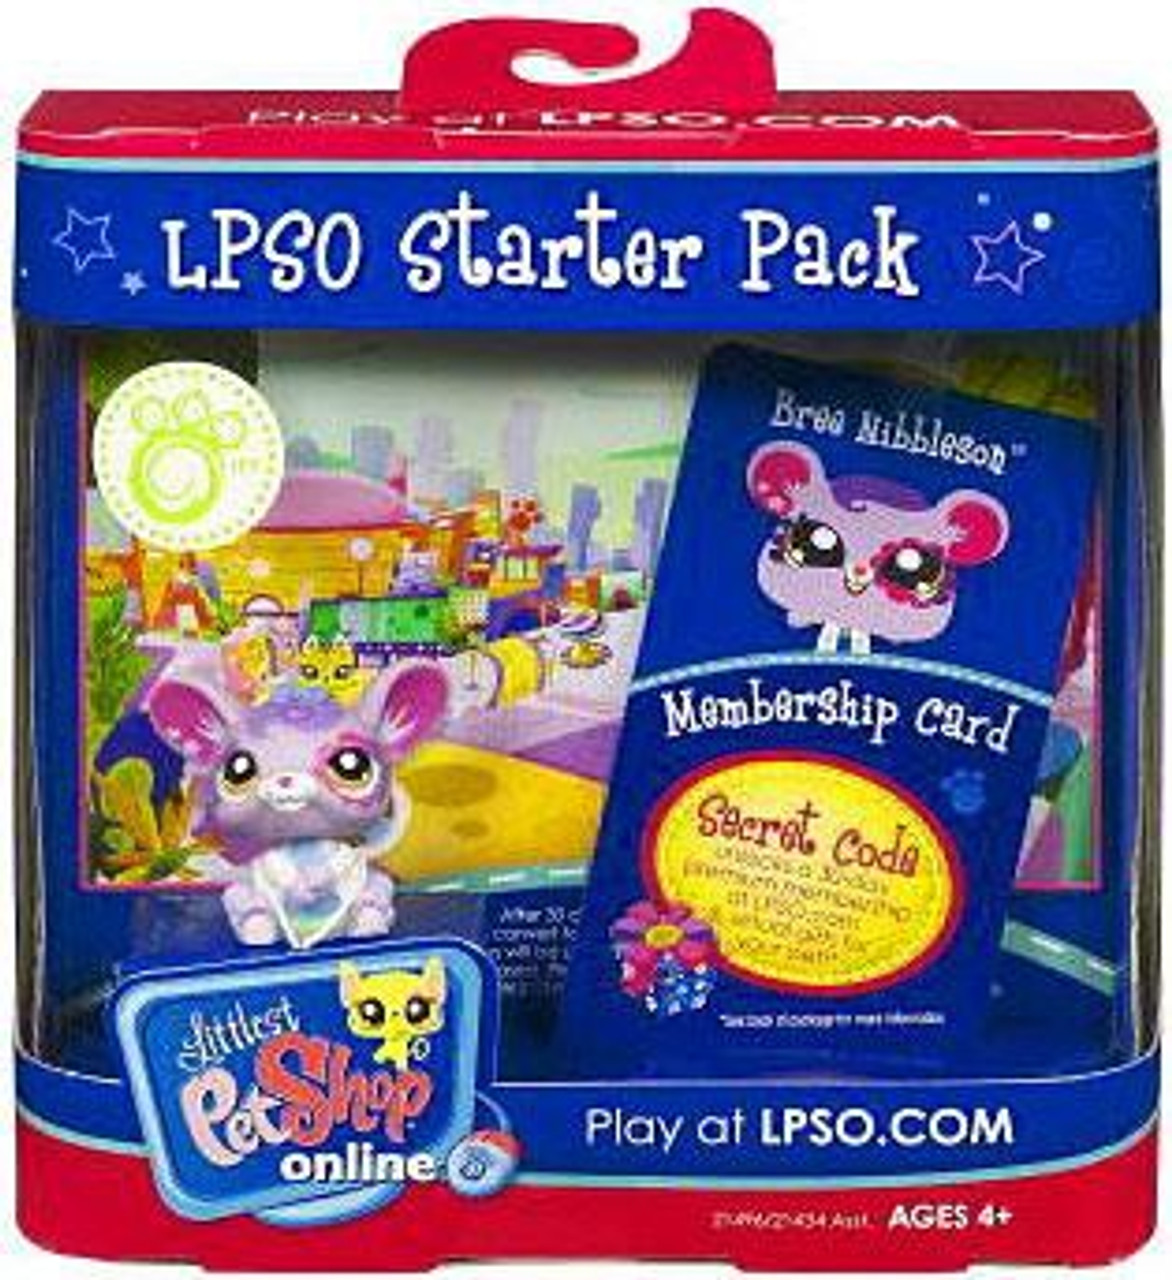 Littlest Pet Shop Online LPSO Starter Pack Bree Nibbleson Figure [Mouse]